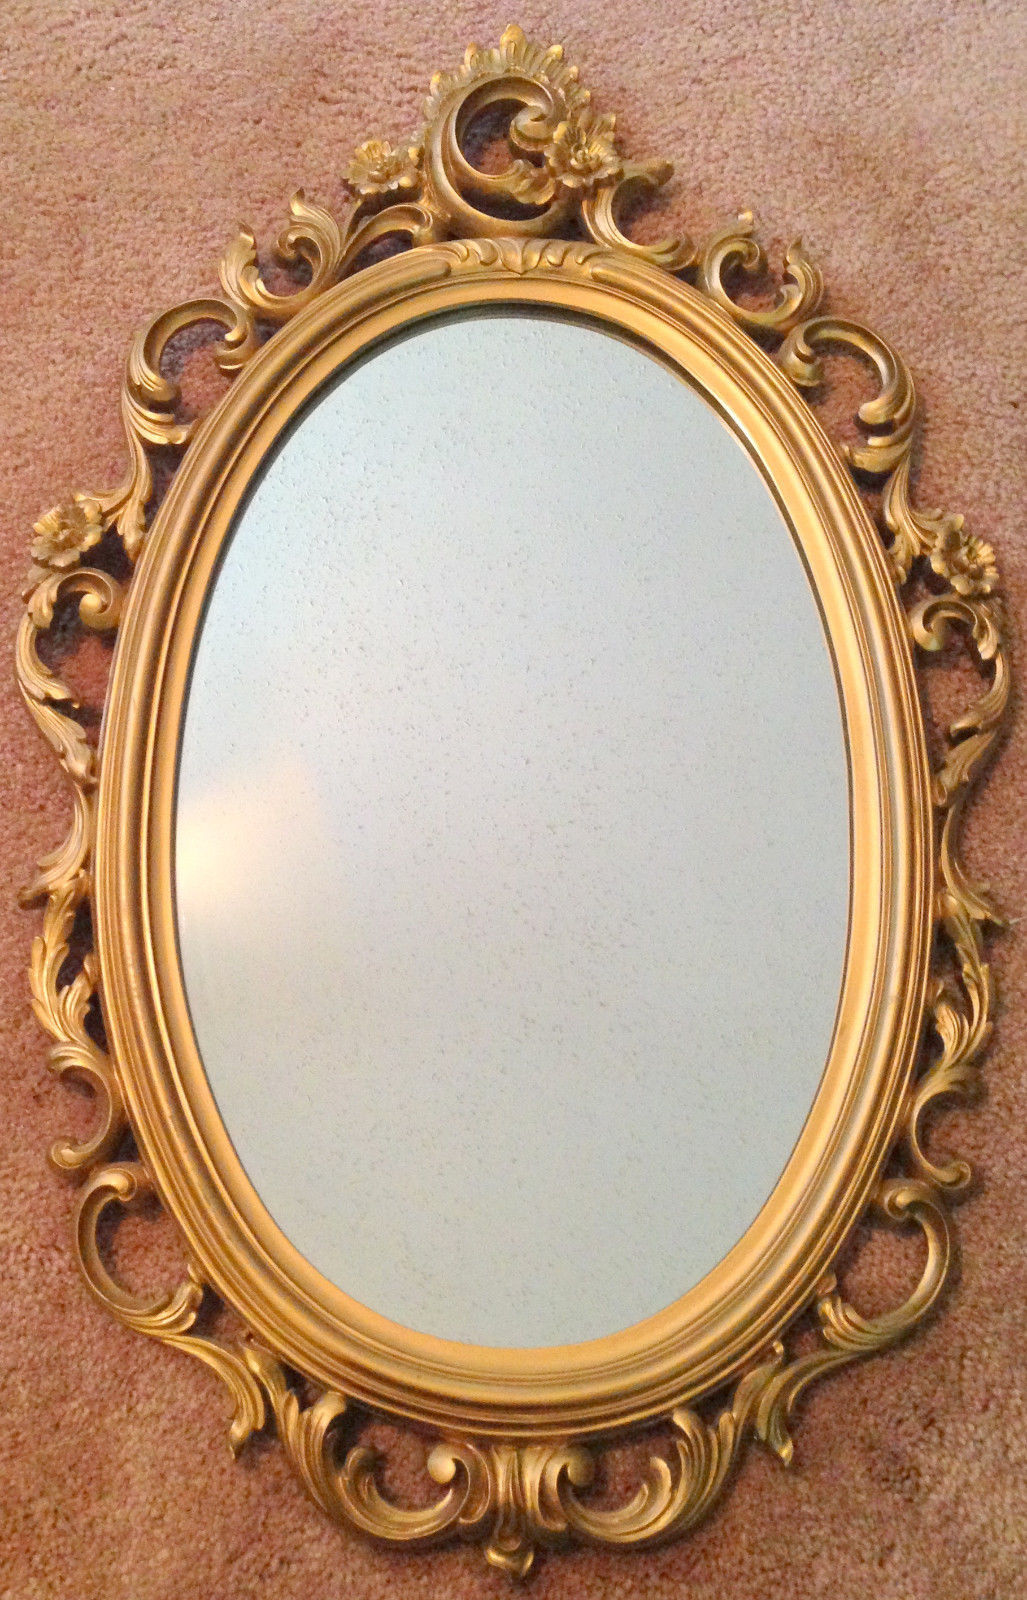 Vtg 1969 Syroco 2314 Oval Wall Mirror Gold and 50 similar items